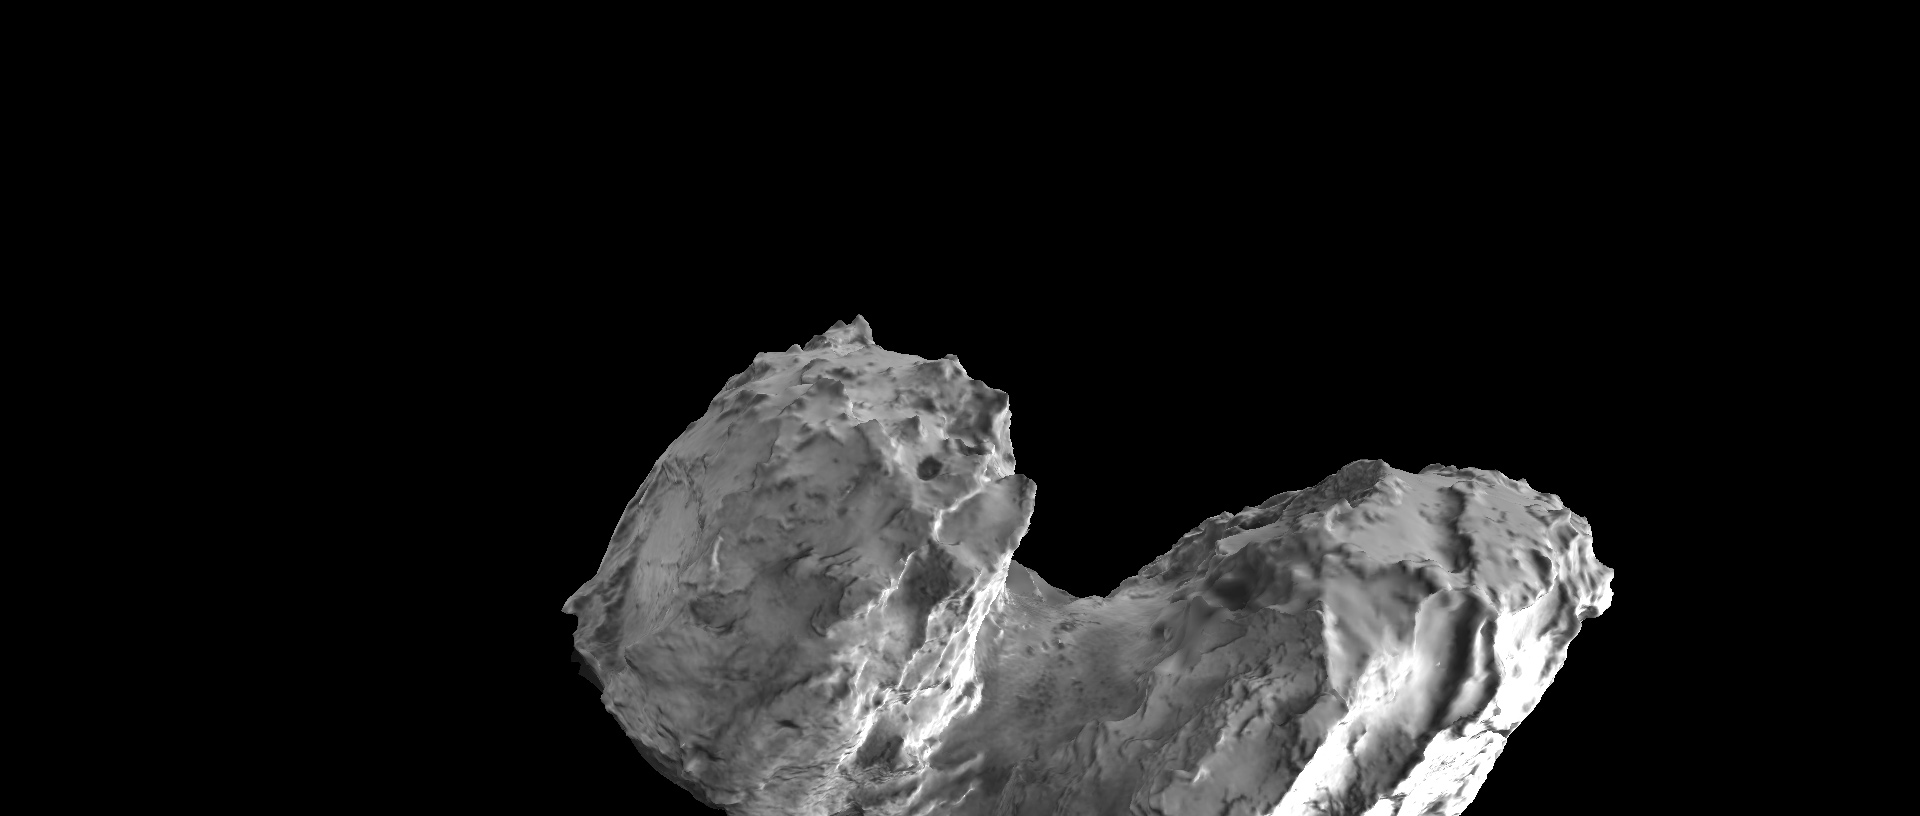 "Interactive data visualization project: ""View Rosetta's comet"" Developed for the European Space Agency. João Martinho Moura (2015)"